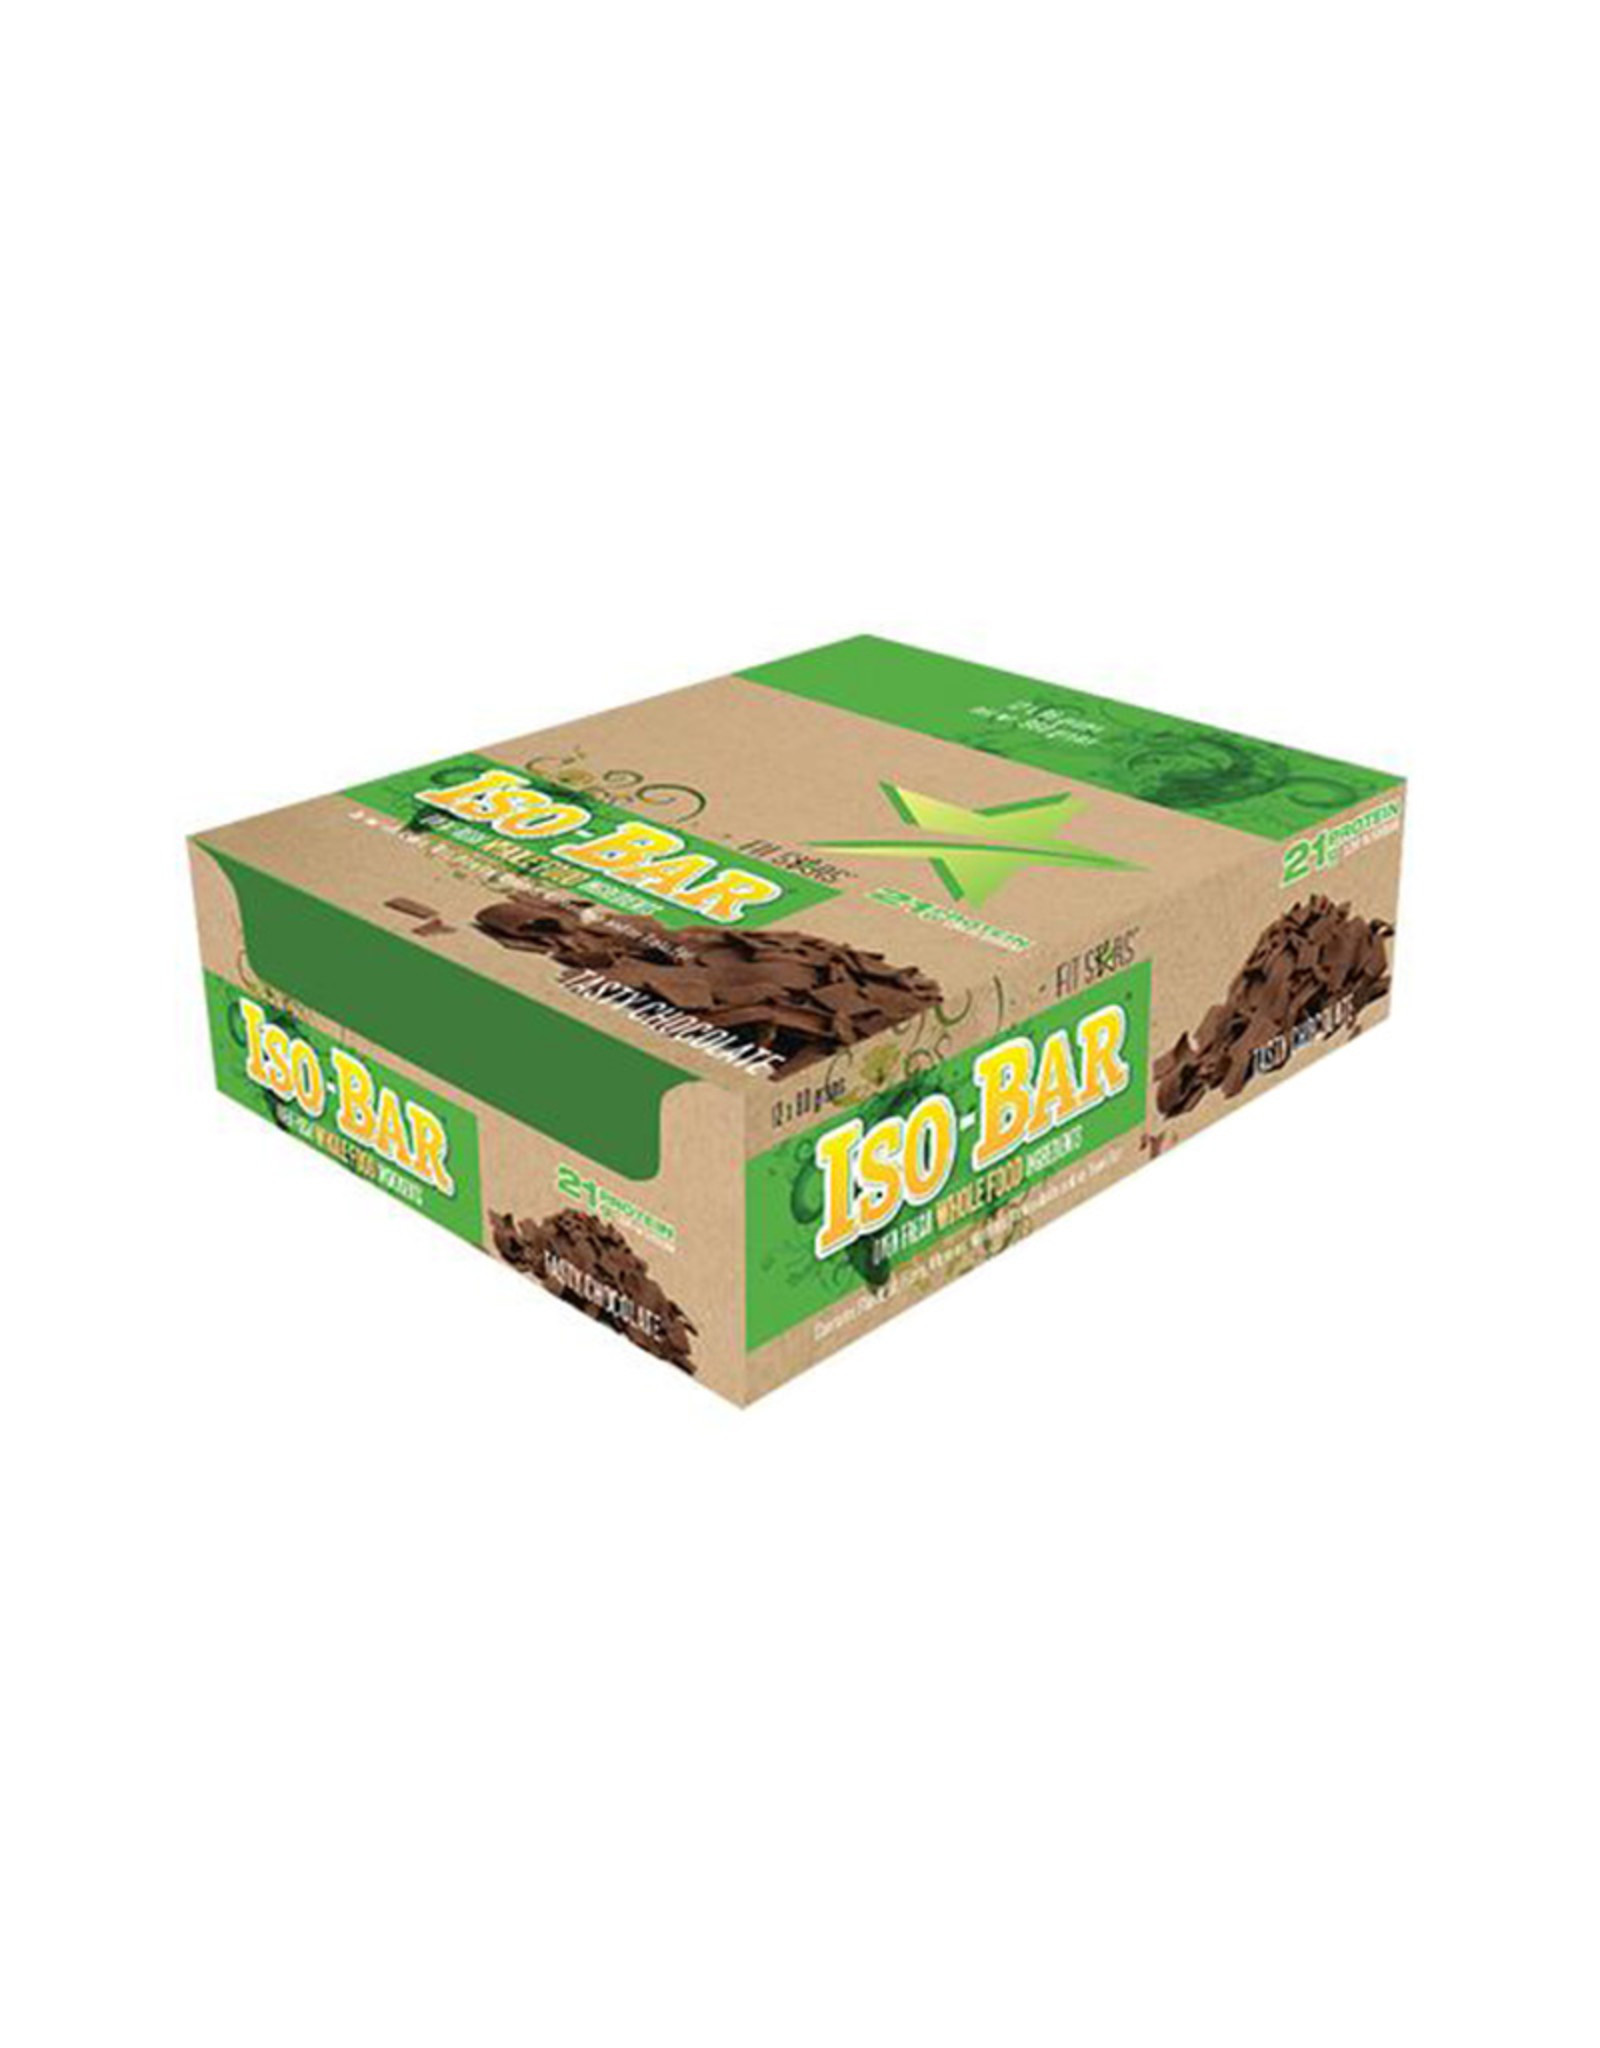 Fit Stars Products Inc. Fit Stars - Iso-Bar, Tasty Chocolate (Box of 12)